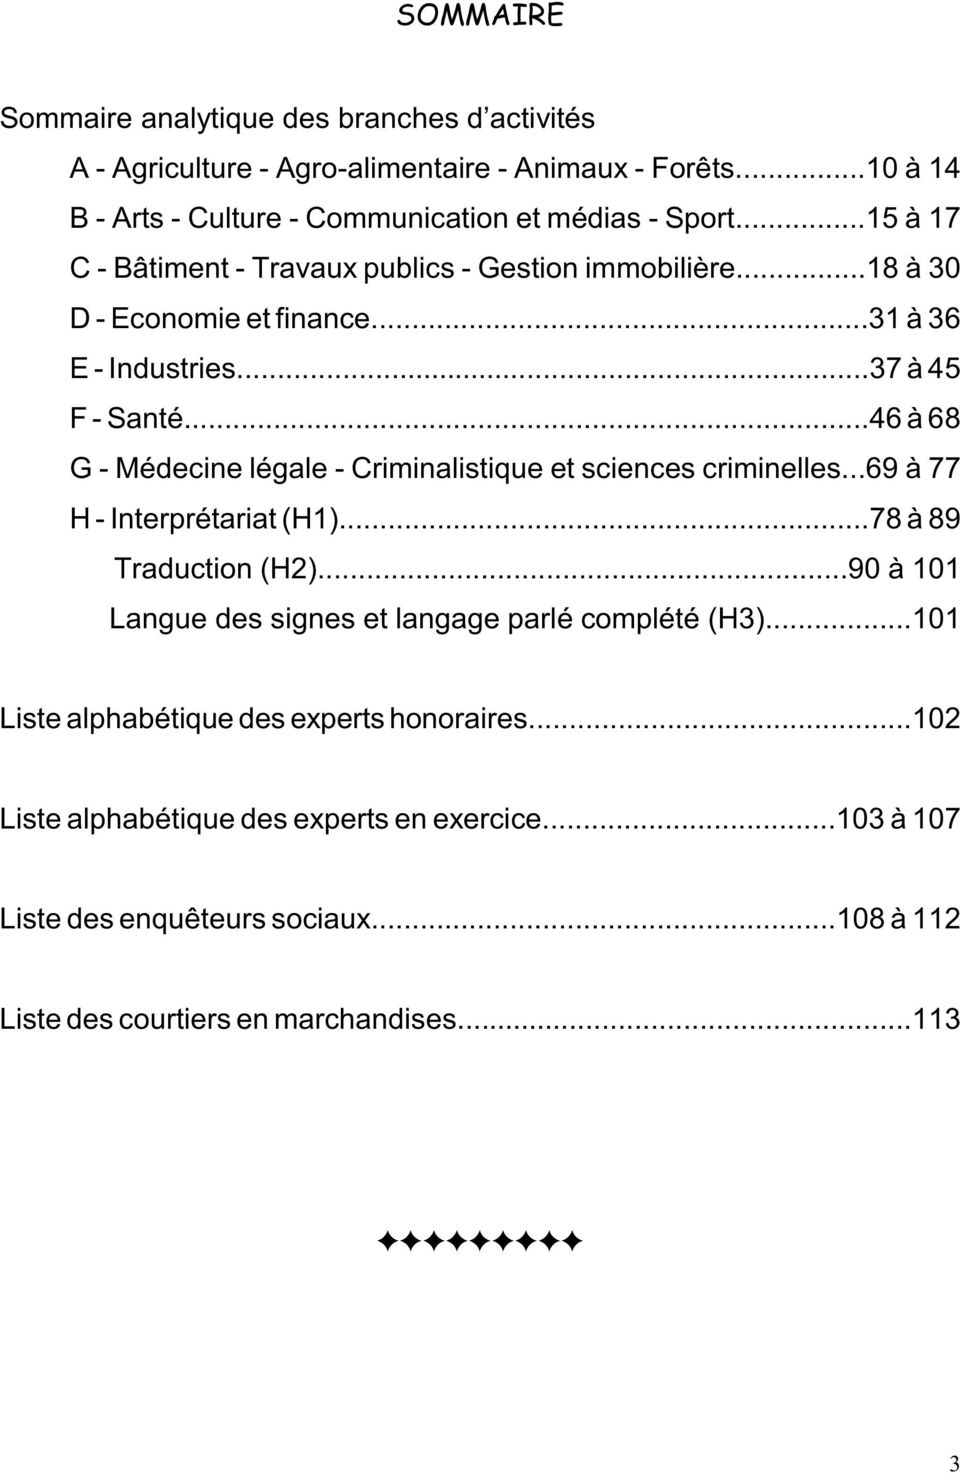 ..46 à 68 G - Médecine légale - Criminalistique et sciences criminelles...69 à 77 H - Interprétariat (H1)...78 à 89 Traduction (H2).